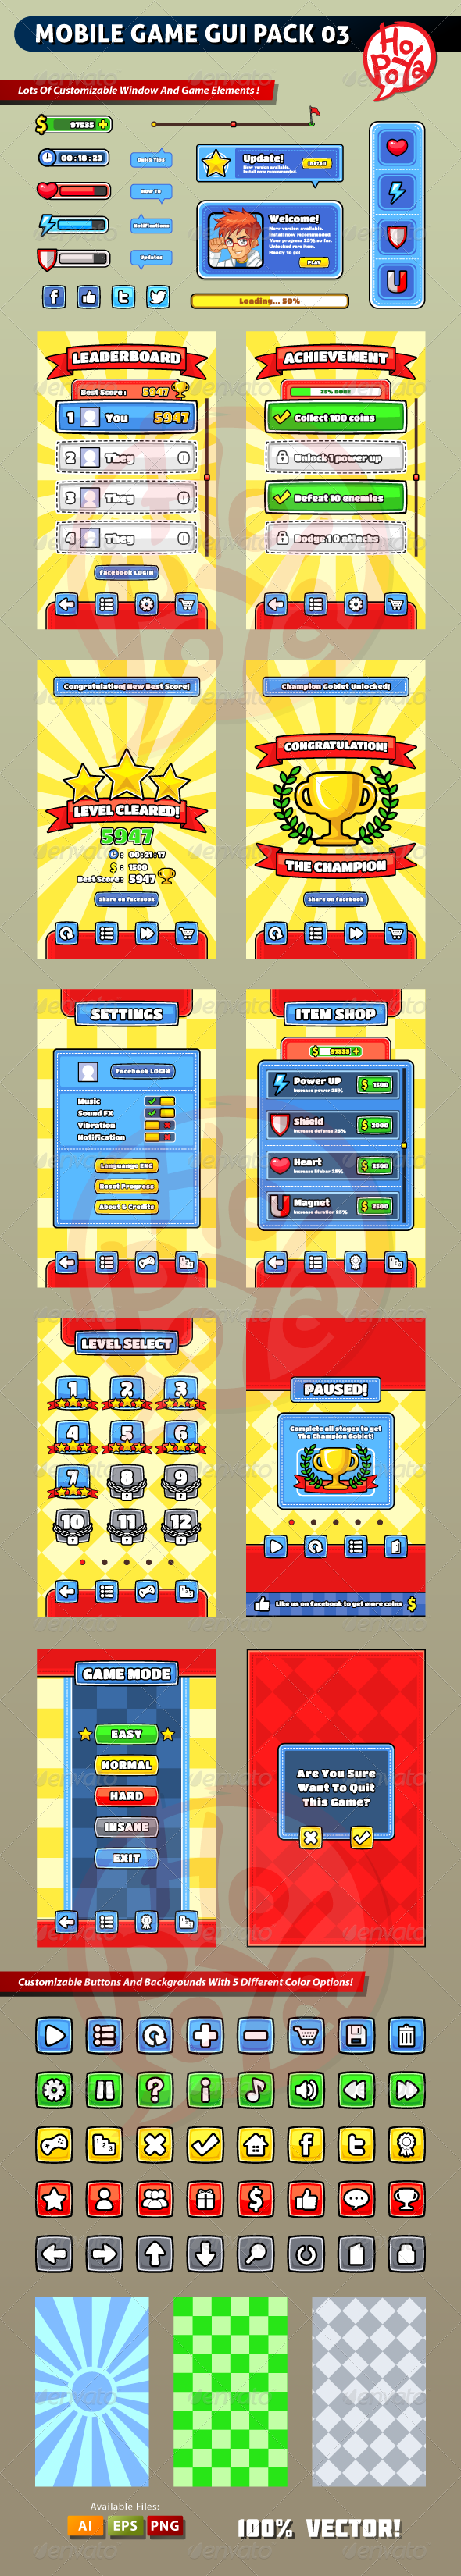 Mobile Game GUI Pack 03 - Web Elements Vectors